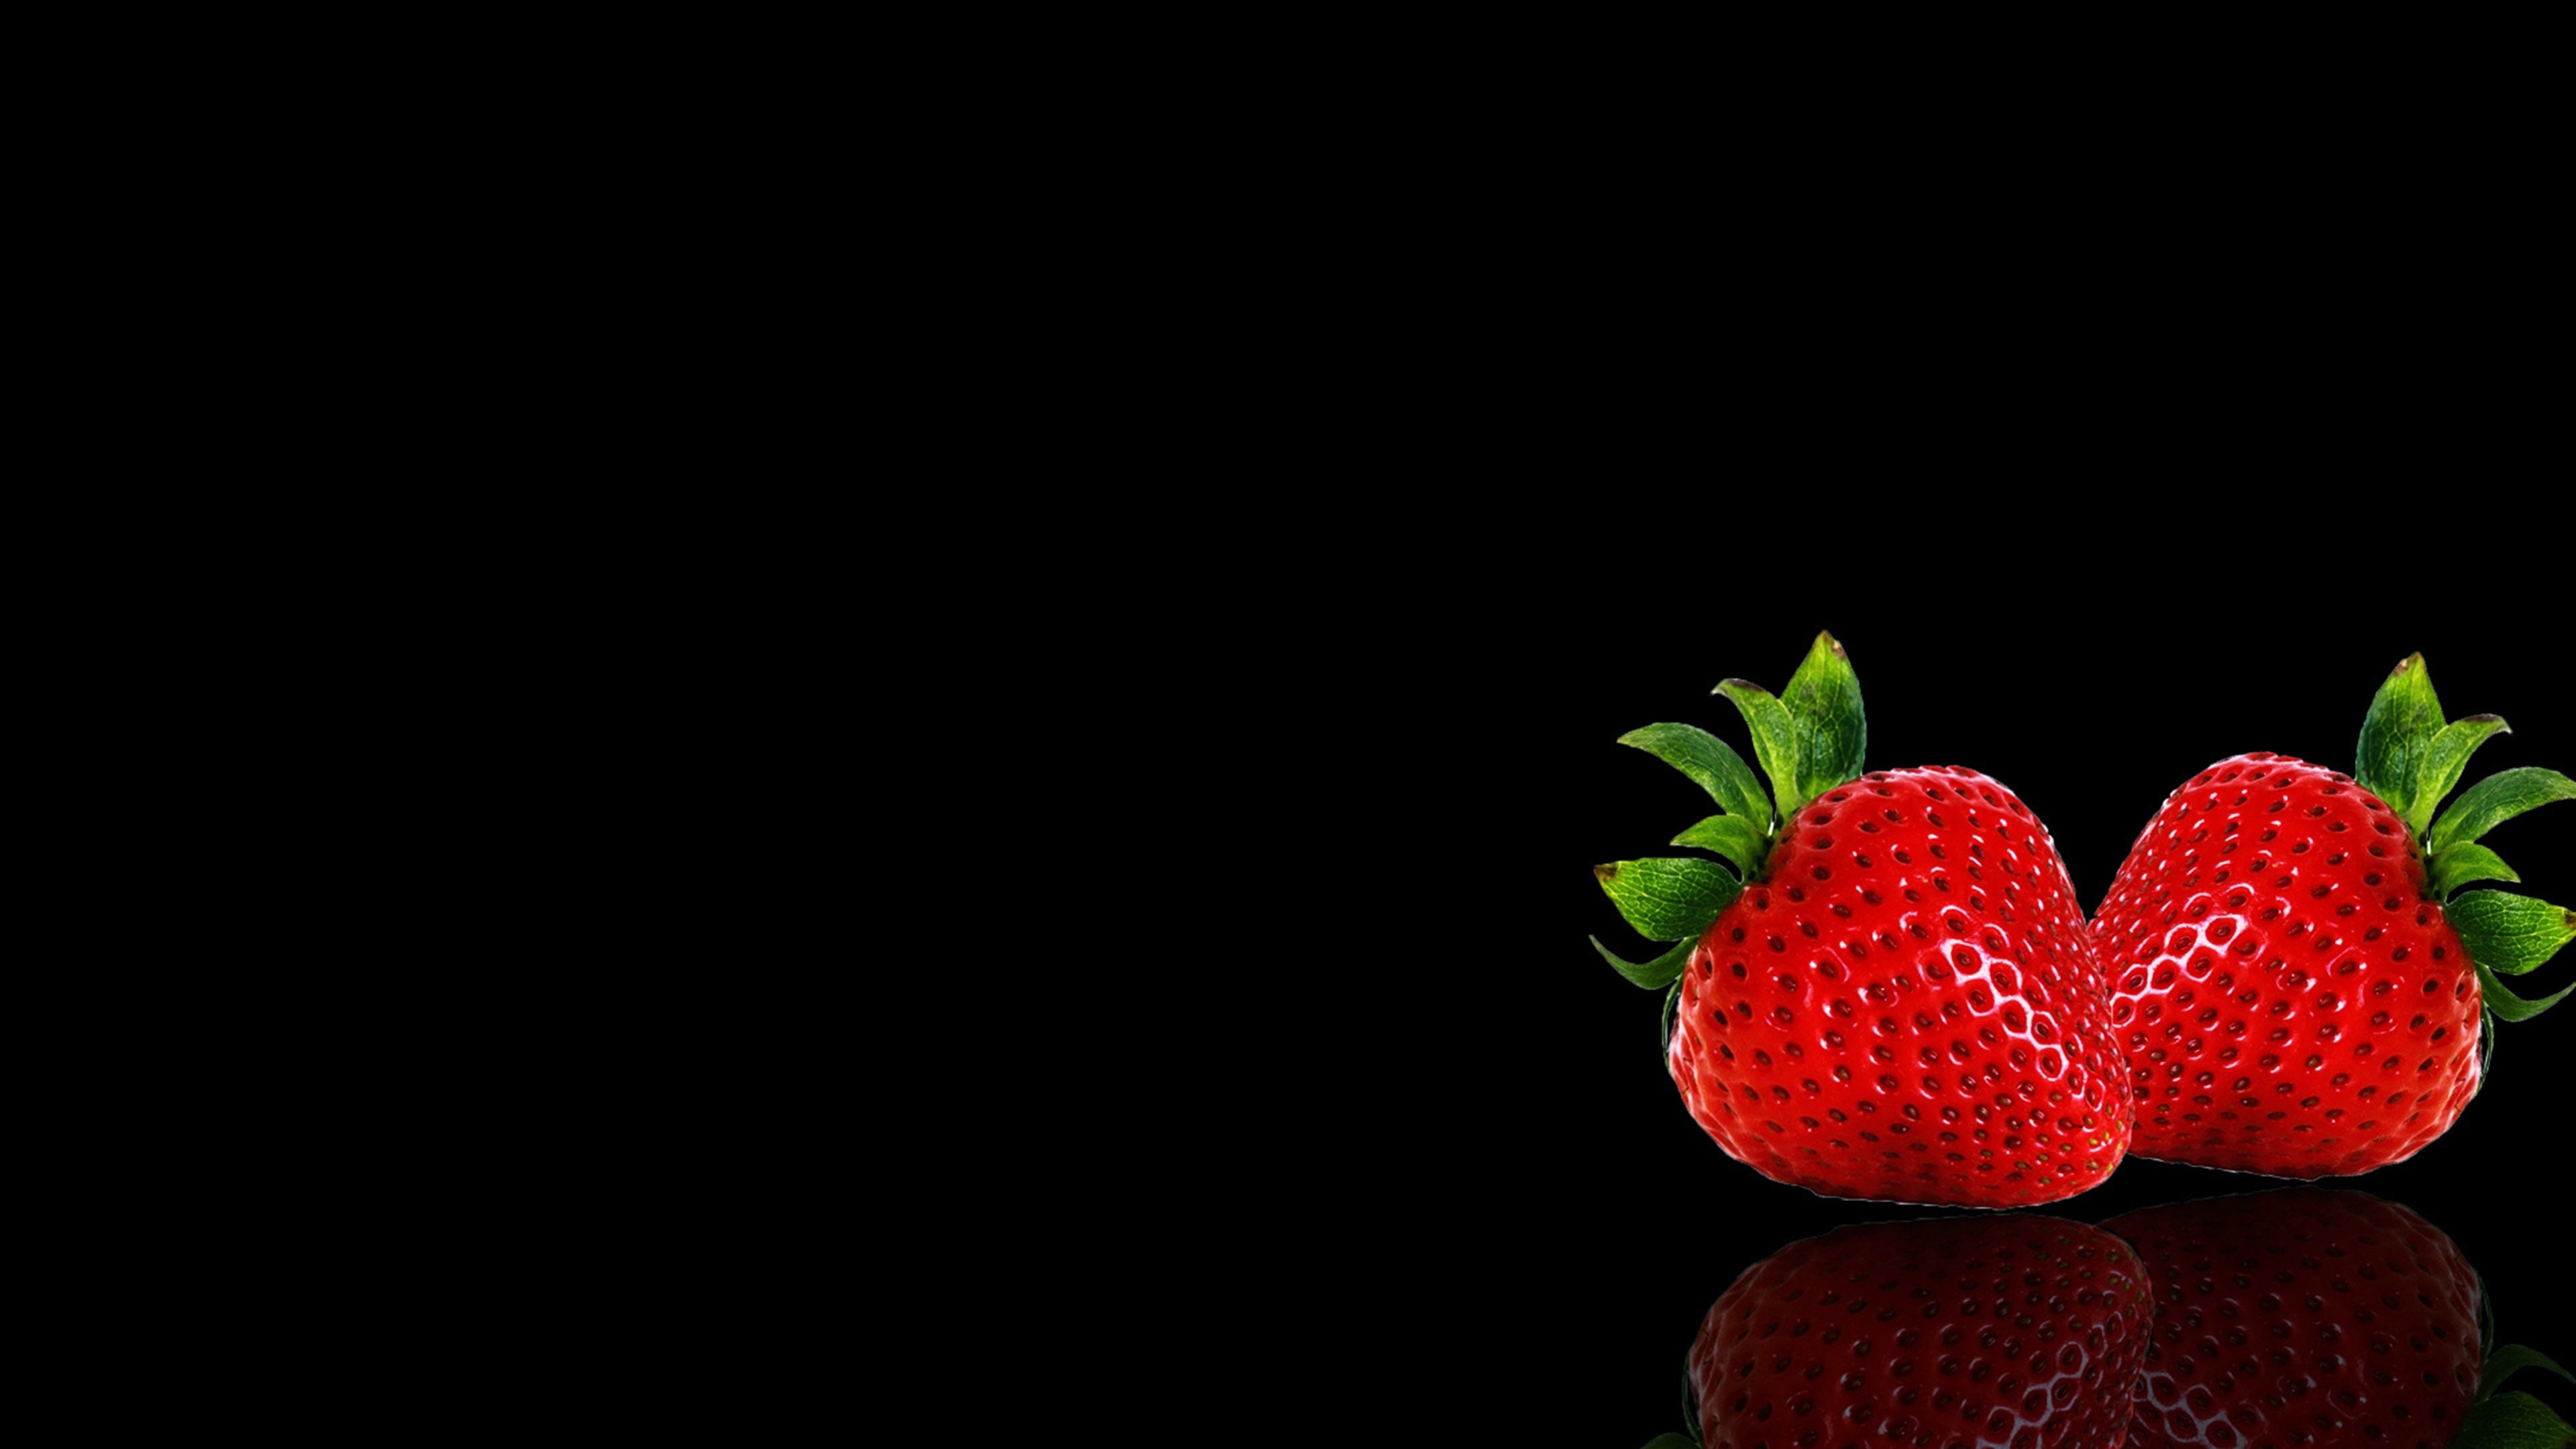 3840x2160 Apple background black fruits wallpapers Strawberry wallpaper |  |  655970 | WallpaperUP